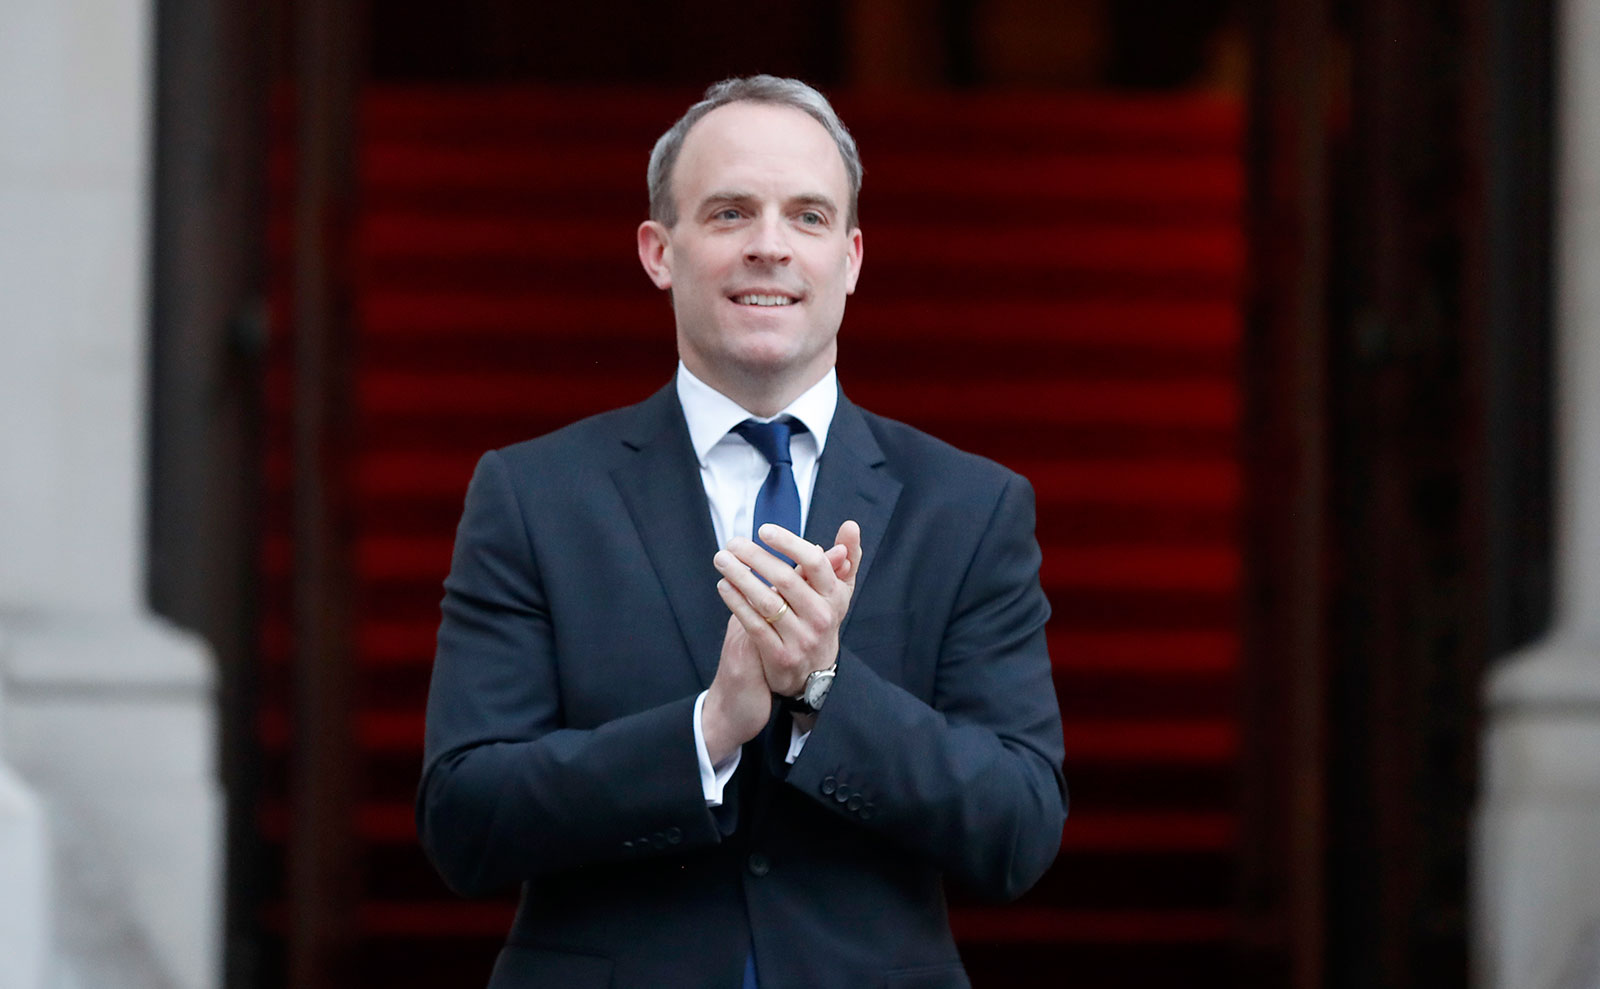 Britain's Foreign Secretary Dominic Raab in London on April 23.